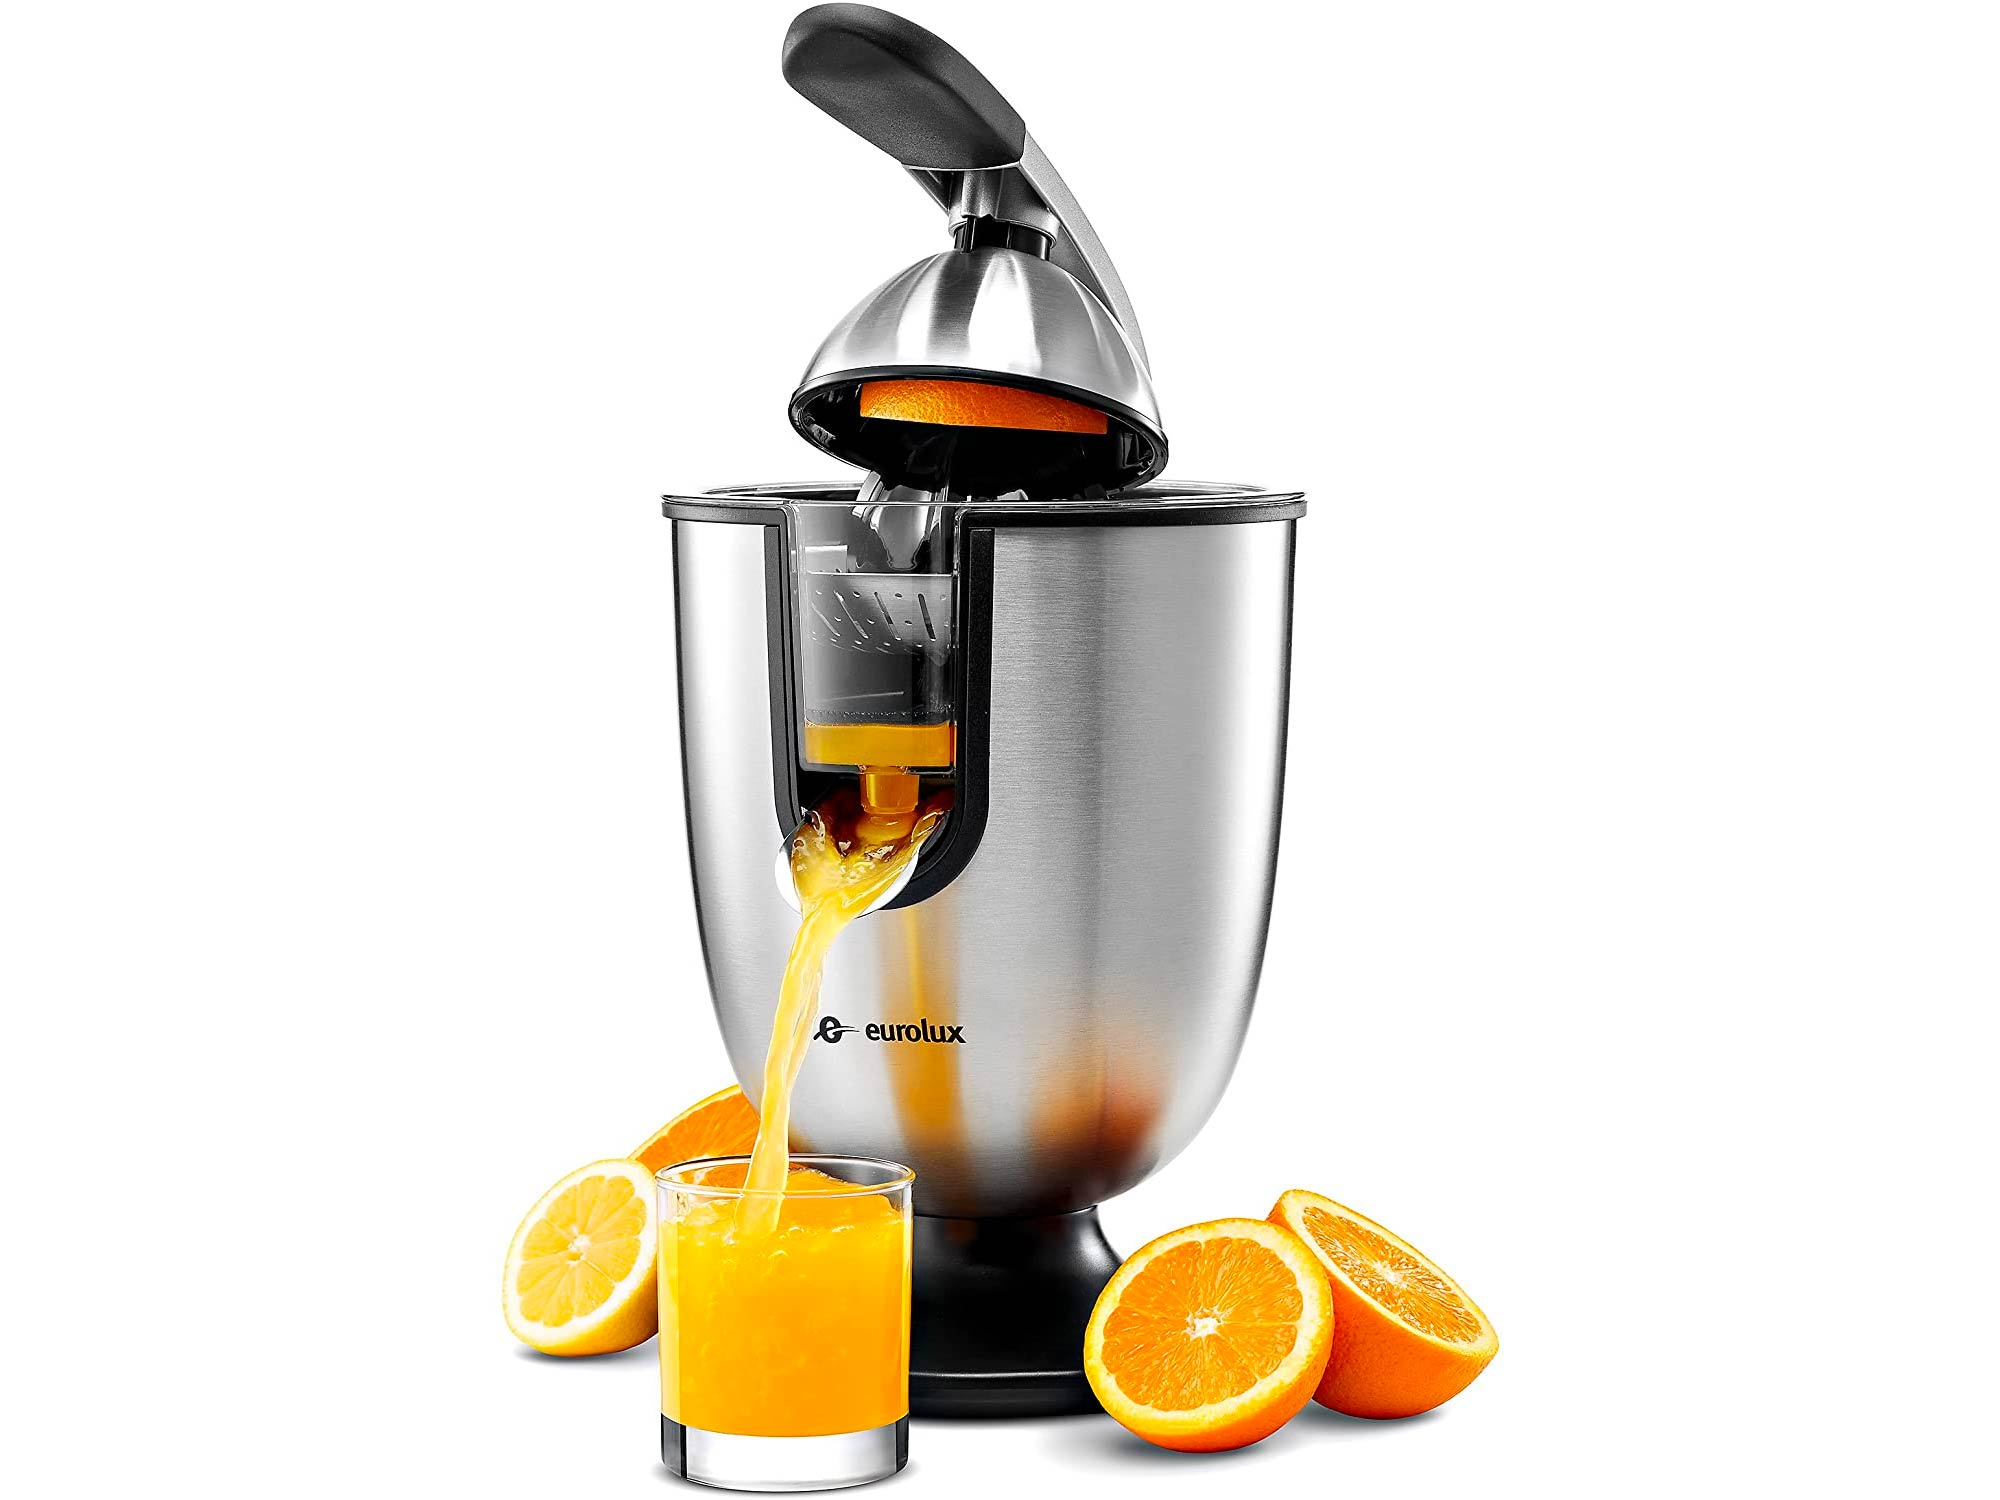 Eurolux Electric Citrus Juicer Squeezer, for Orange, Lemon, Grapefruit, Stainless Steel 160 Watts of Power Soft Grip Handle and Cone Lid for Easy Use